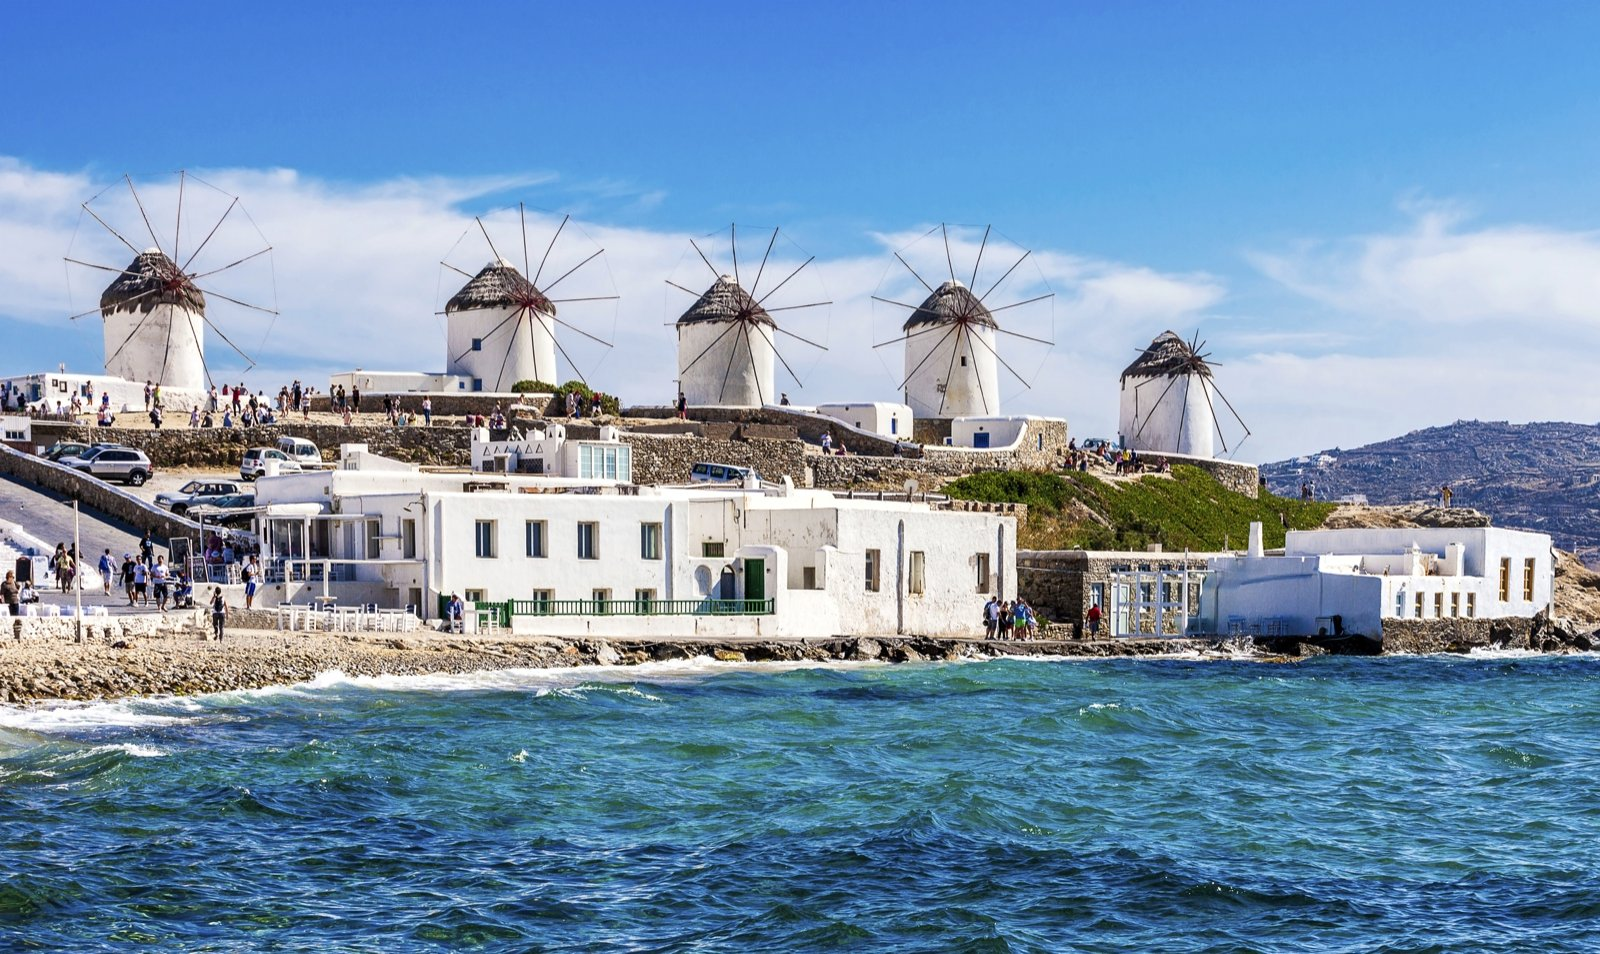 How to see the windmills on Mykonos